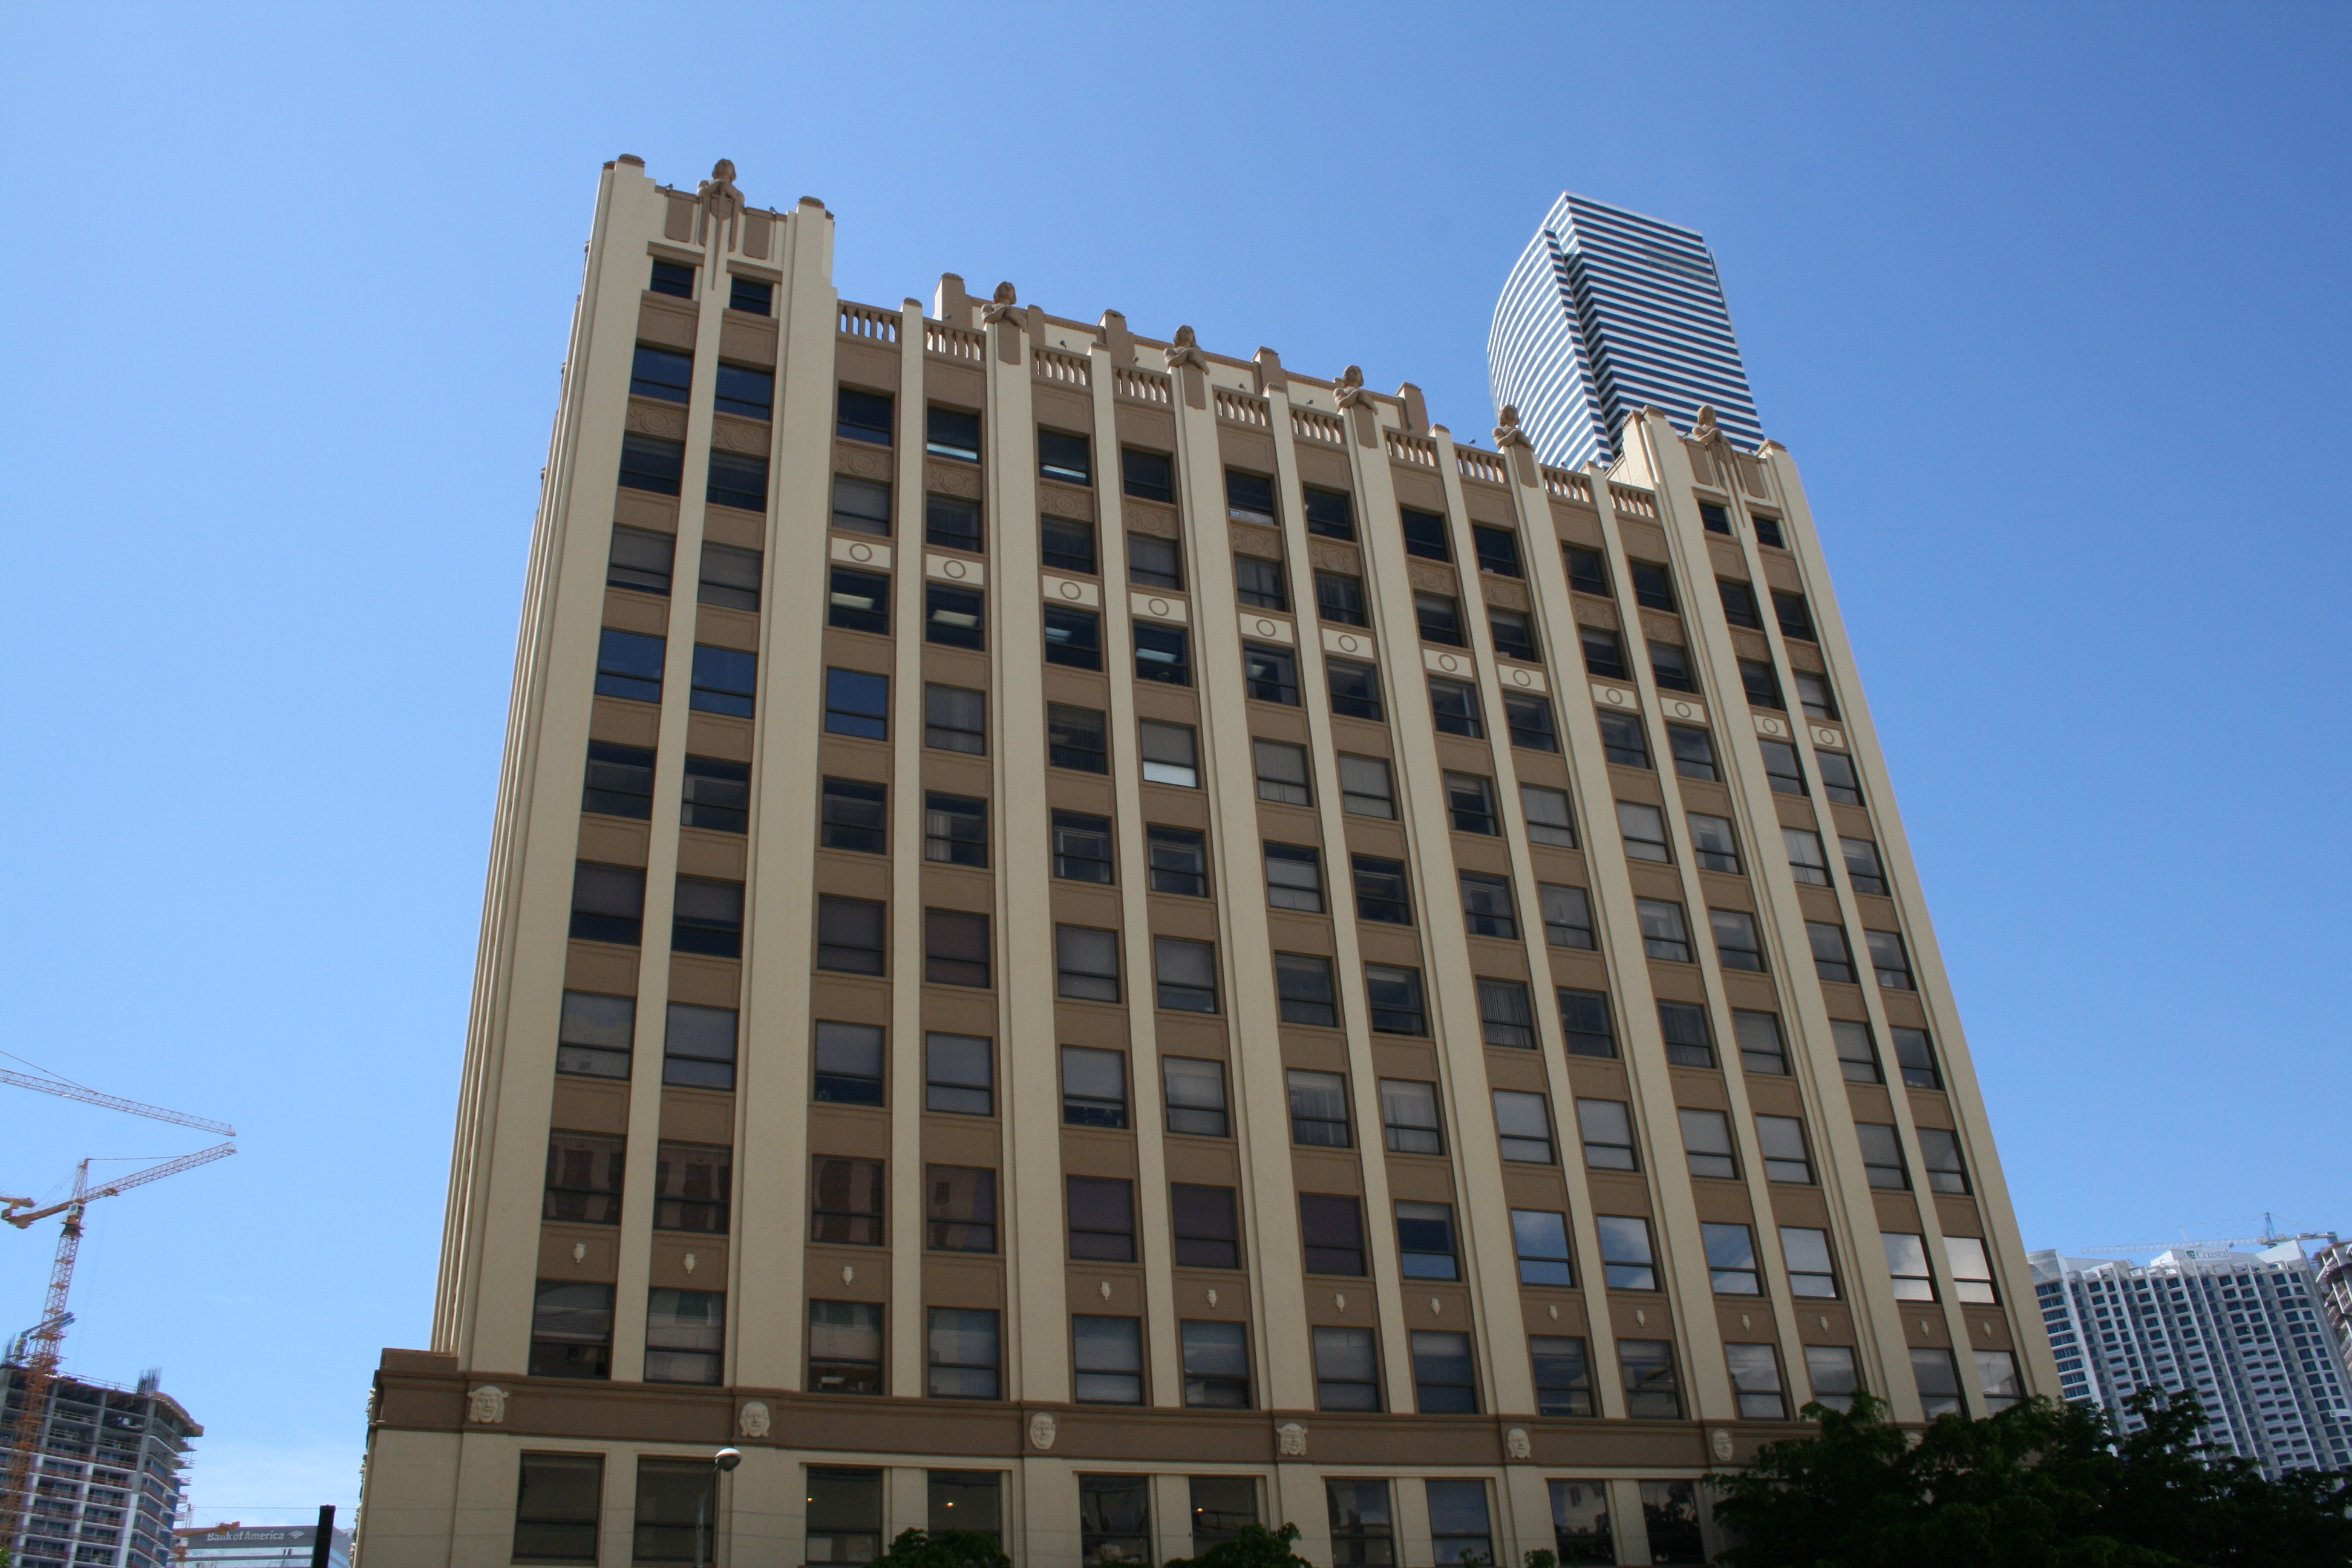 The Huntington Building today serves as office spaces and condominiums. Image obtained from the JSK Architectural Group.